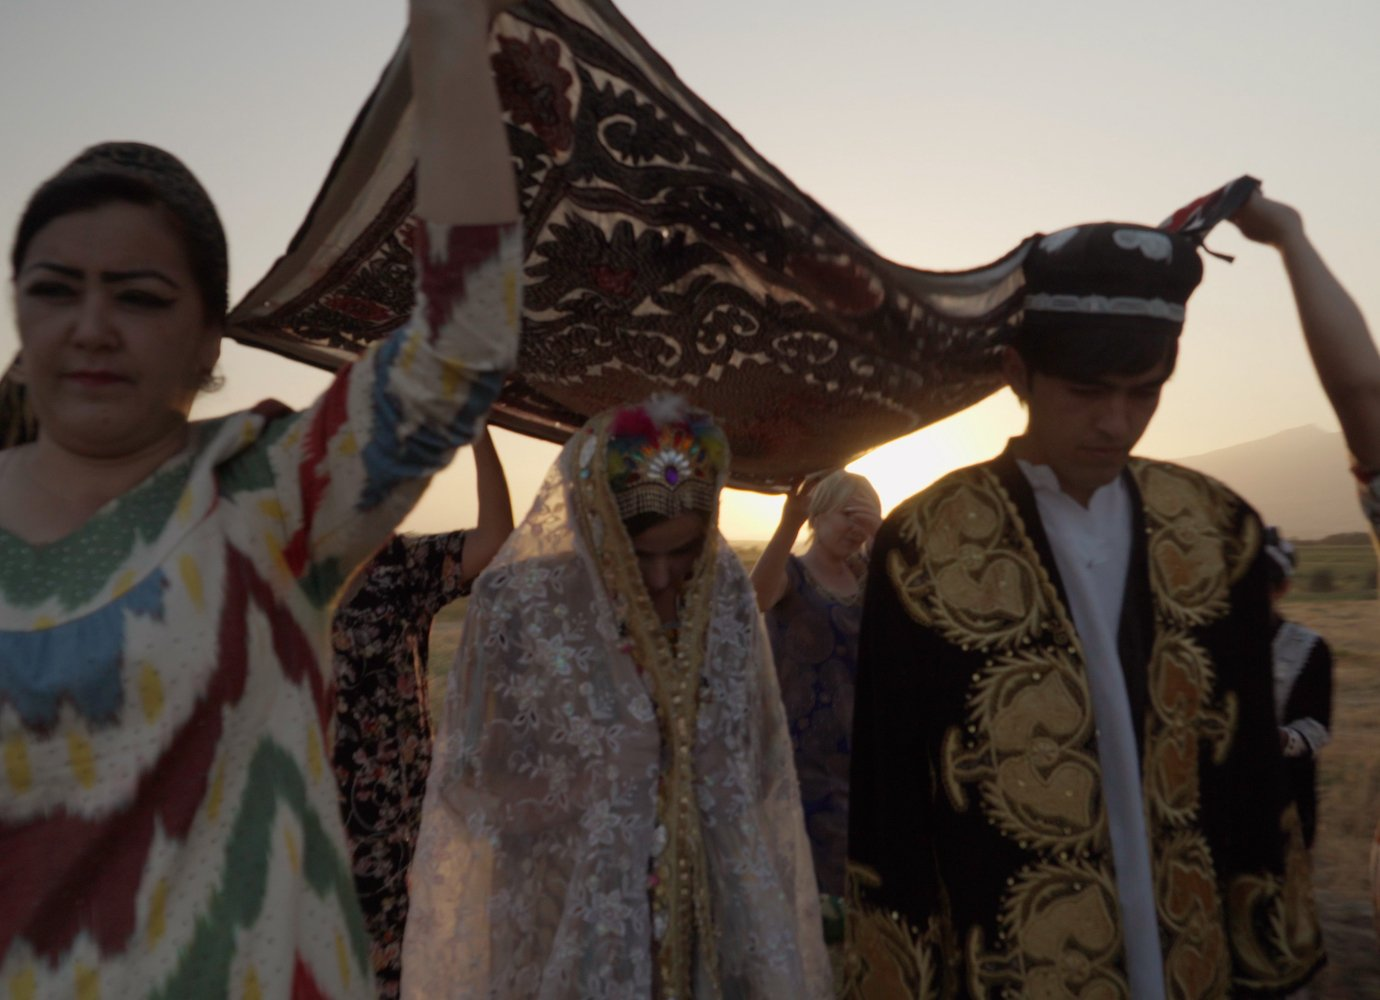 Rhythms of Lost Time: an otherworldly journey in the fight to preserve Tajikistan's ancient musical rituals